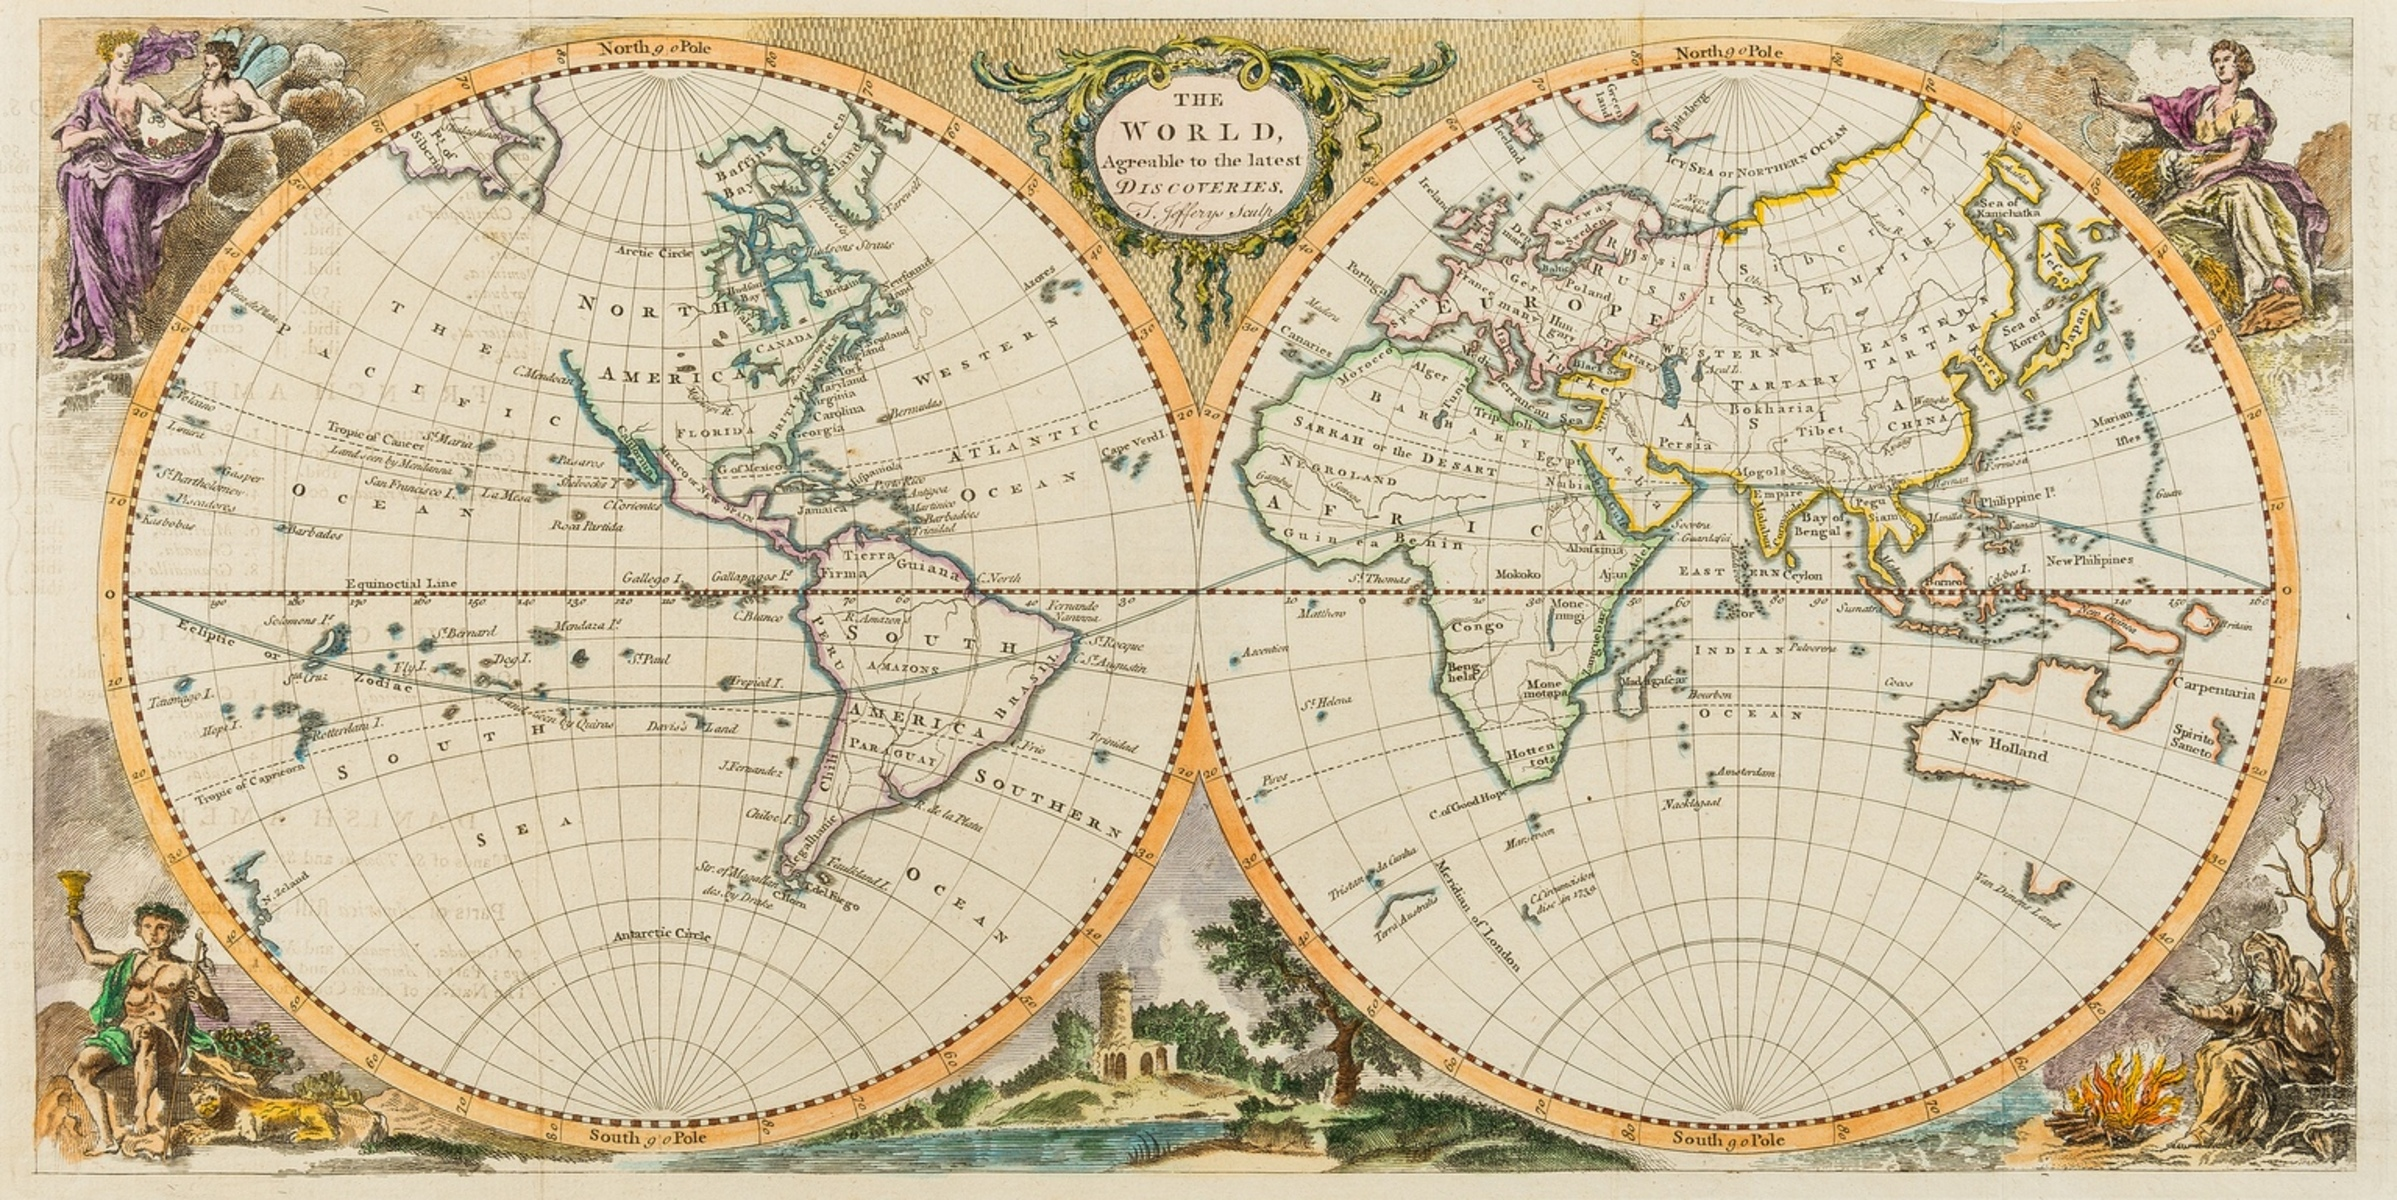 World.- Jefferys (Thomas) The World, agreable to the latest discoveries, [c.1760].